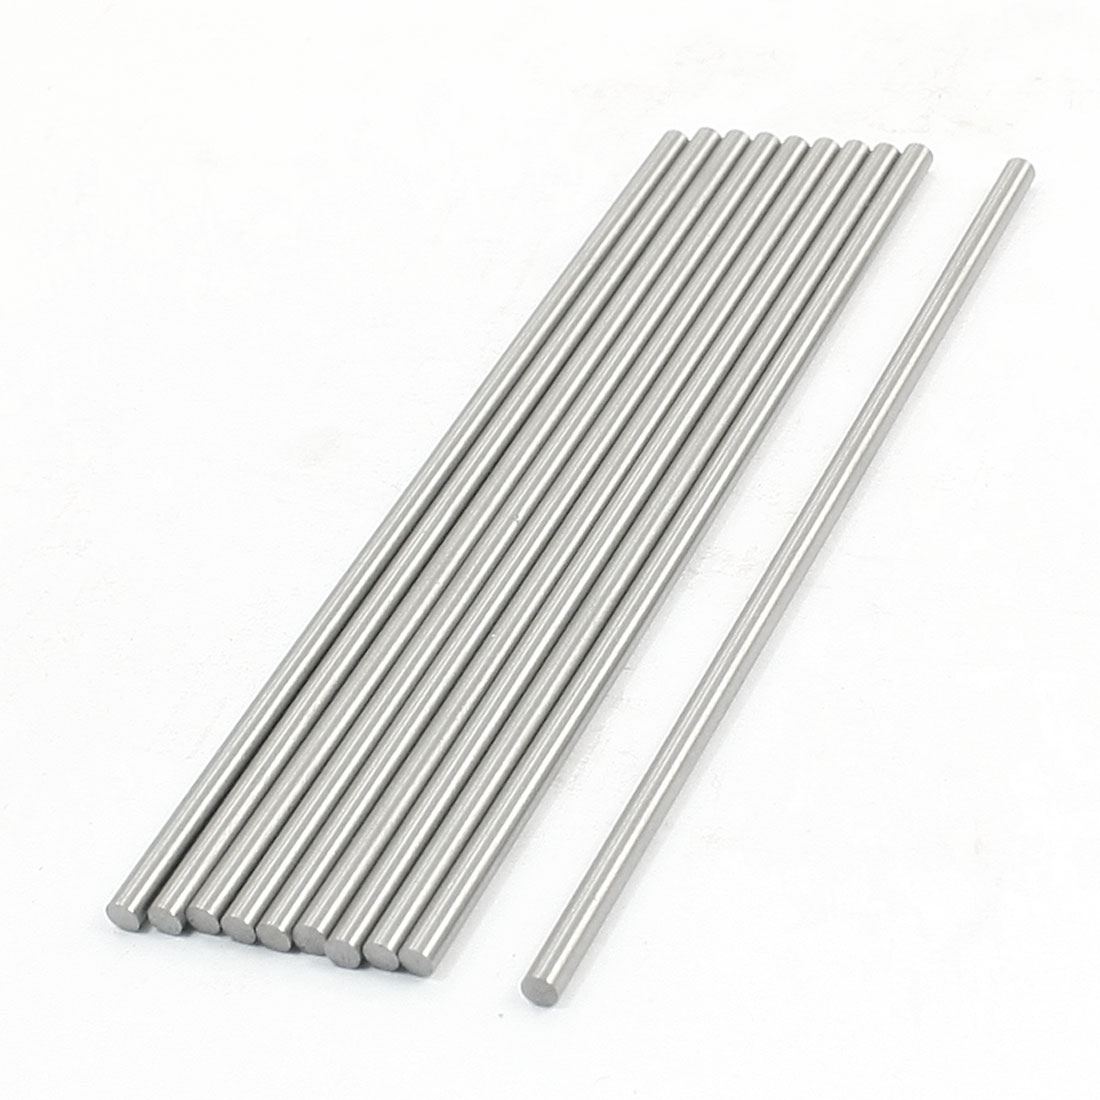 Unique Bargains 10 Pcs HSS High Speed Steel Round Turning Lathe Bars 2.8mm x 100mm by Unique-Bargains